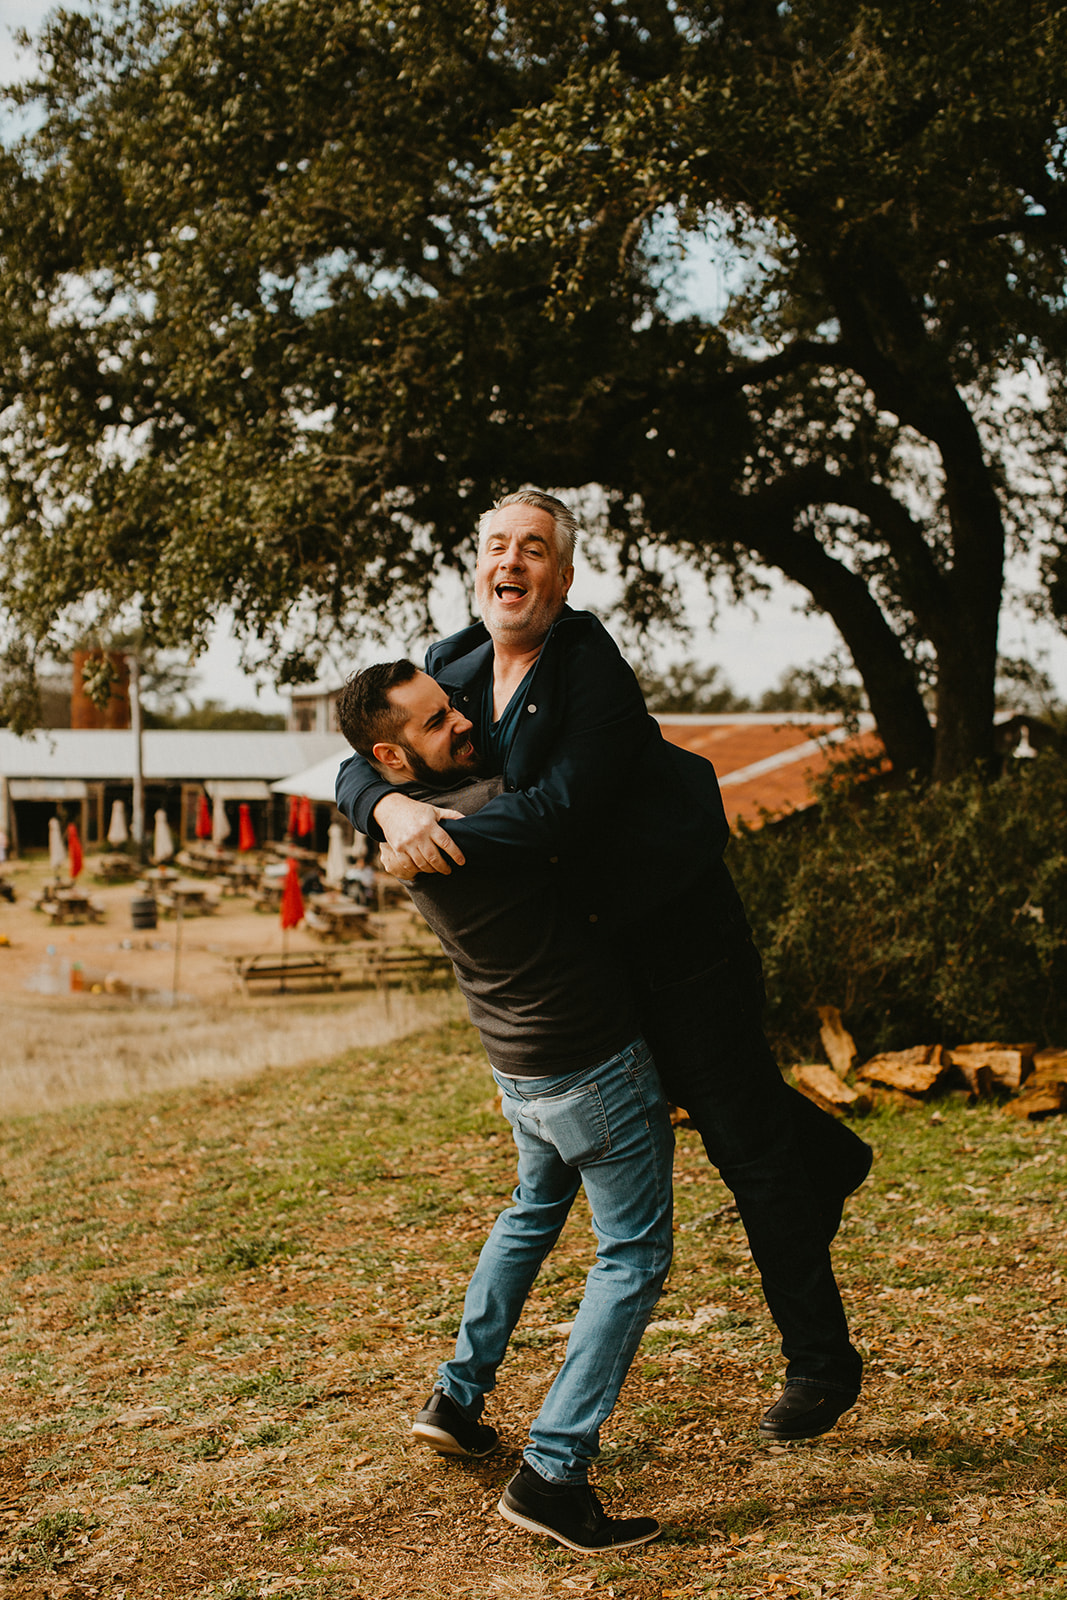 destination wedding planner + destination wedding coordinator + jester king brewery groom + groomsmen pre-wedding hangout + austin, dripping springs, texas + pizza + craft beer + father + son + dad portrait picture